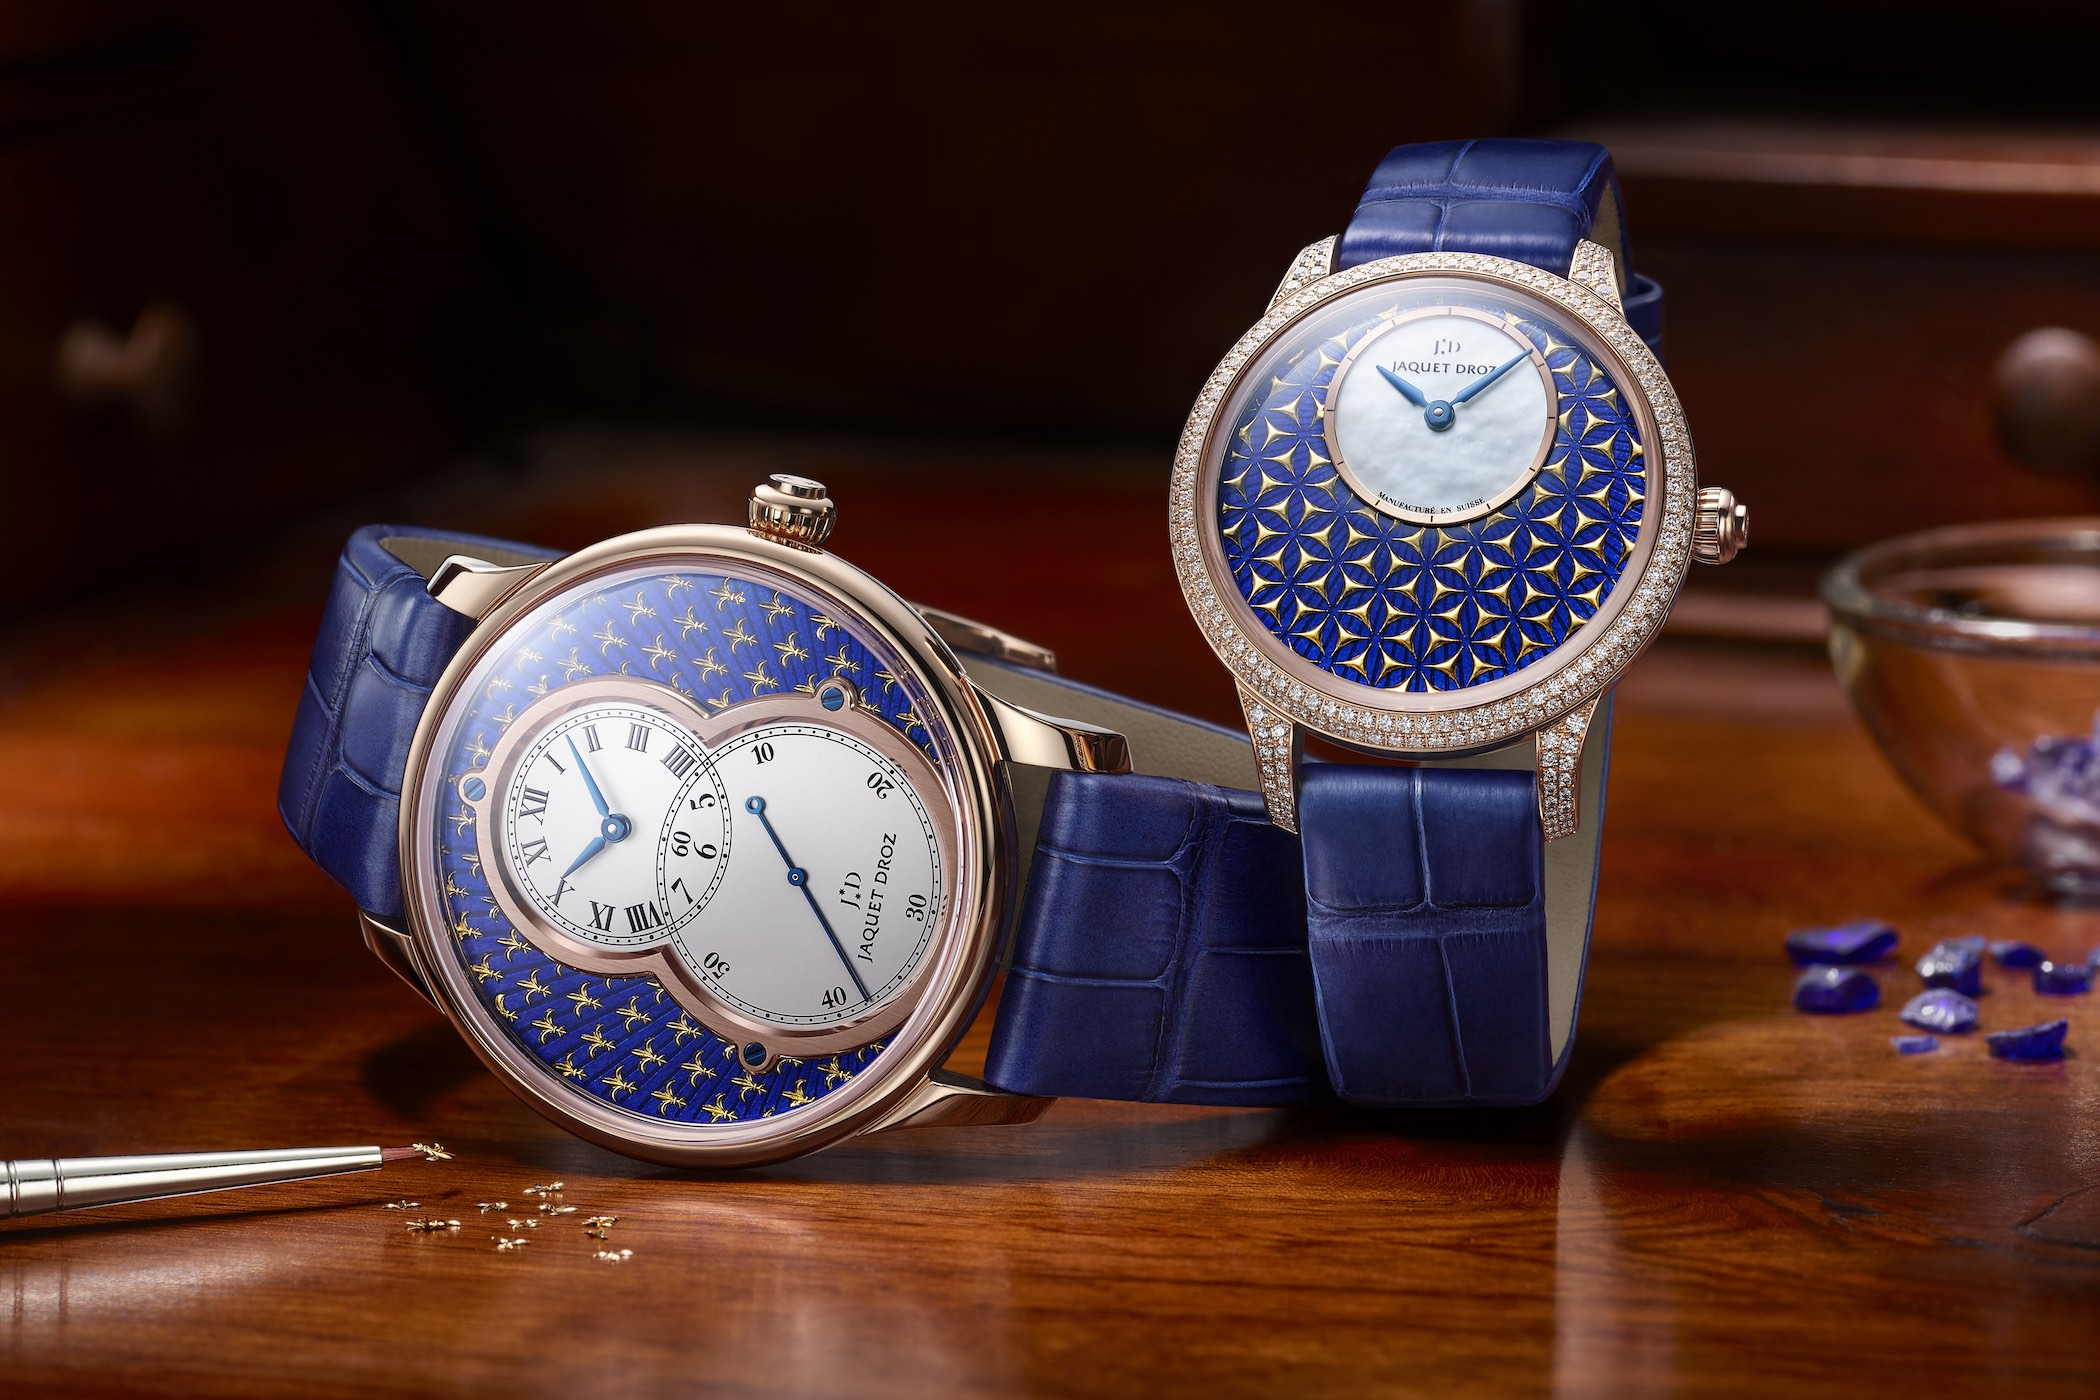 Jaquet Droz Grande Seconde and Petite Heure Minute Paillonne 2020